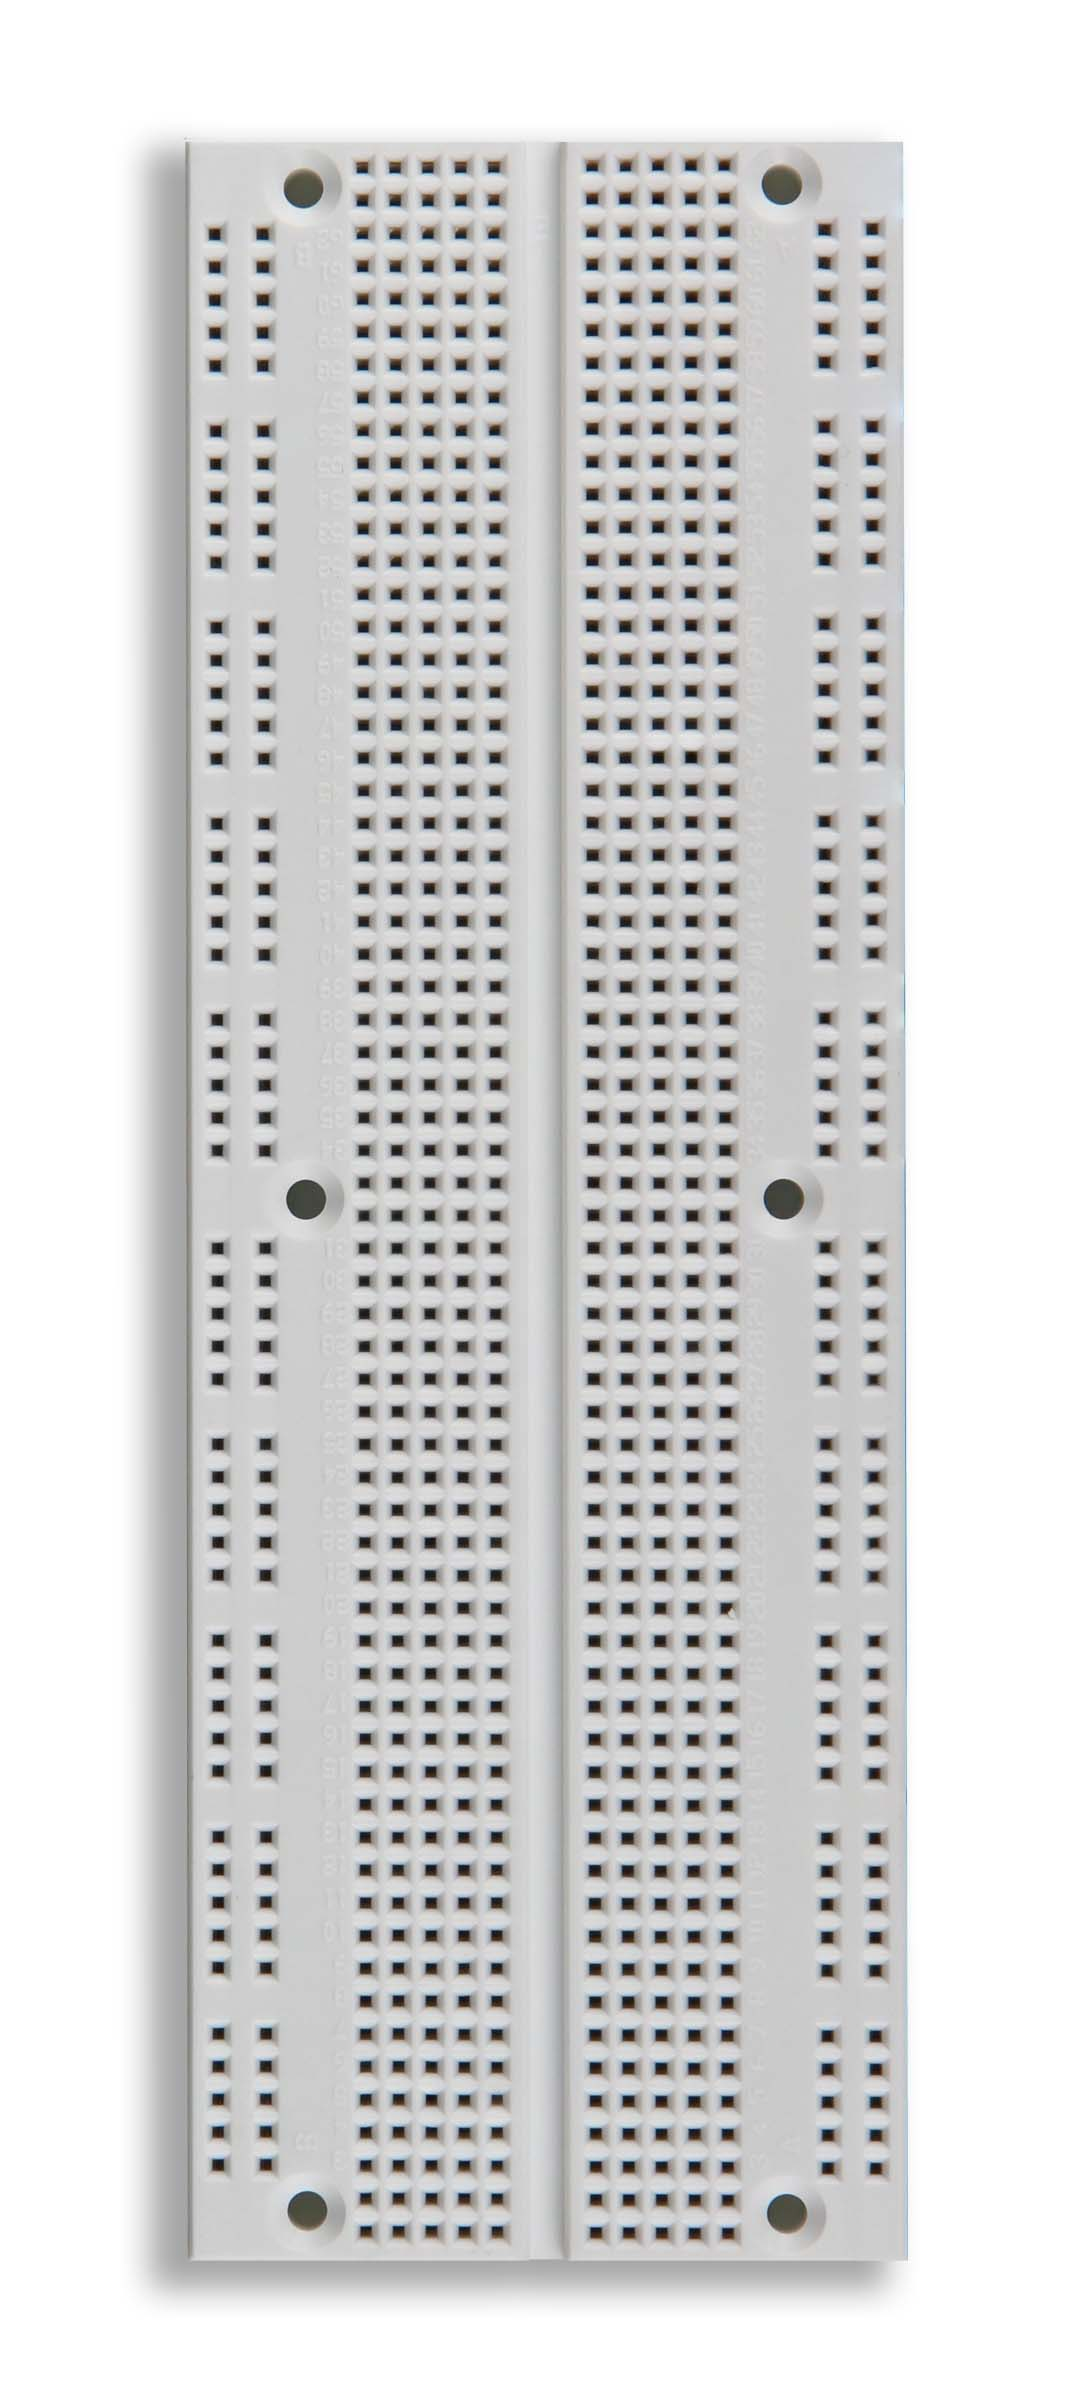 Global Specialties UBS-100 Solderless Breadboard, 840 Tie-Points